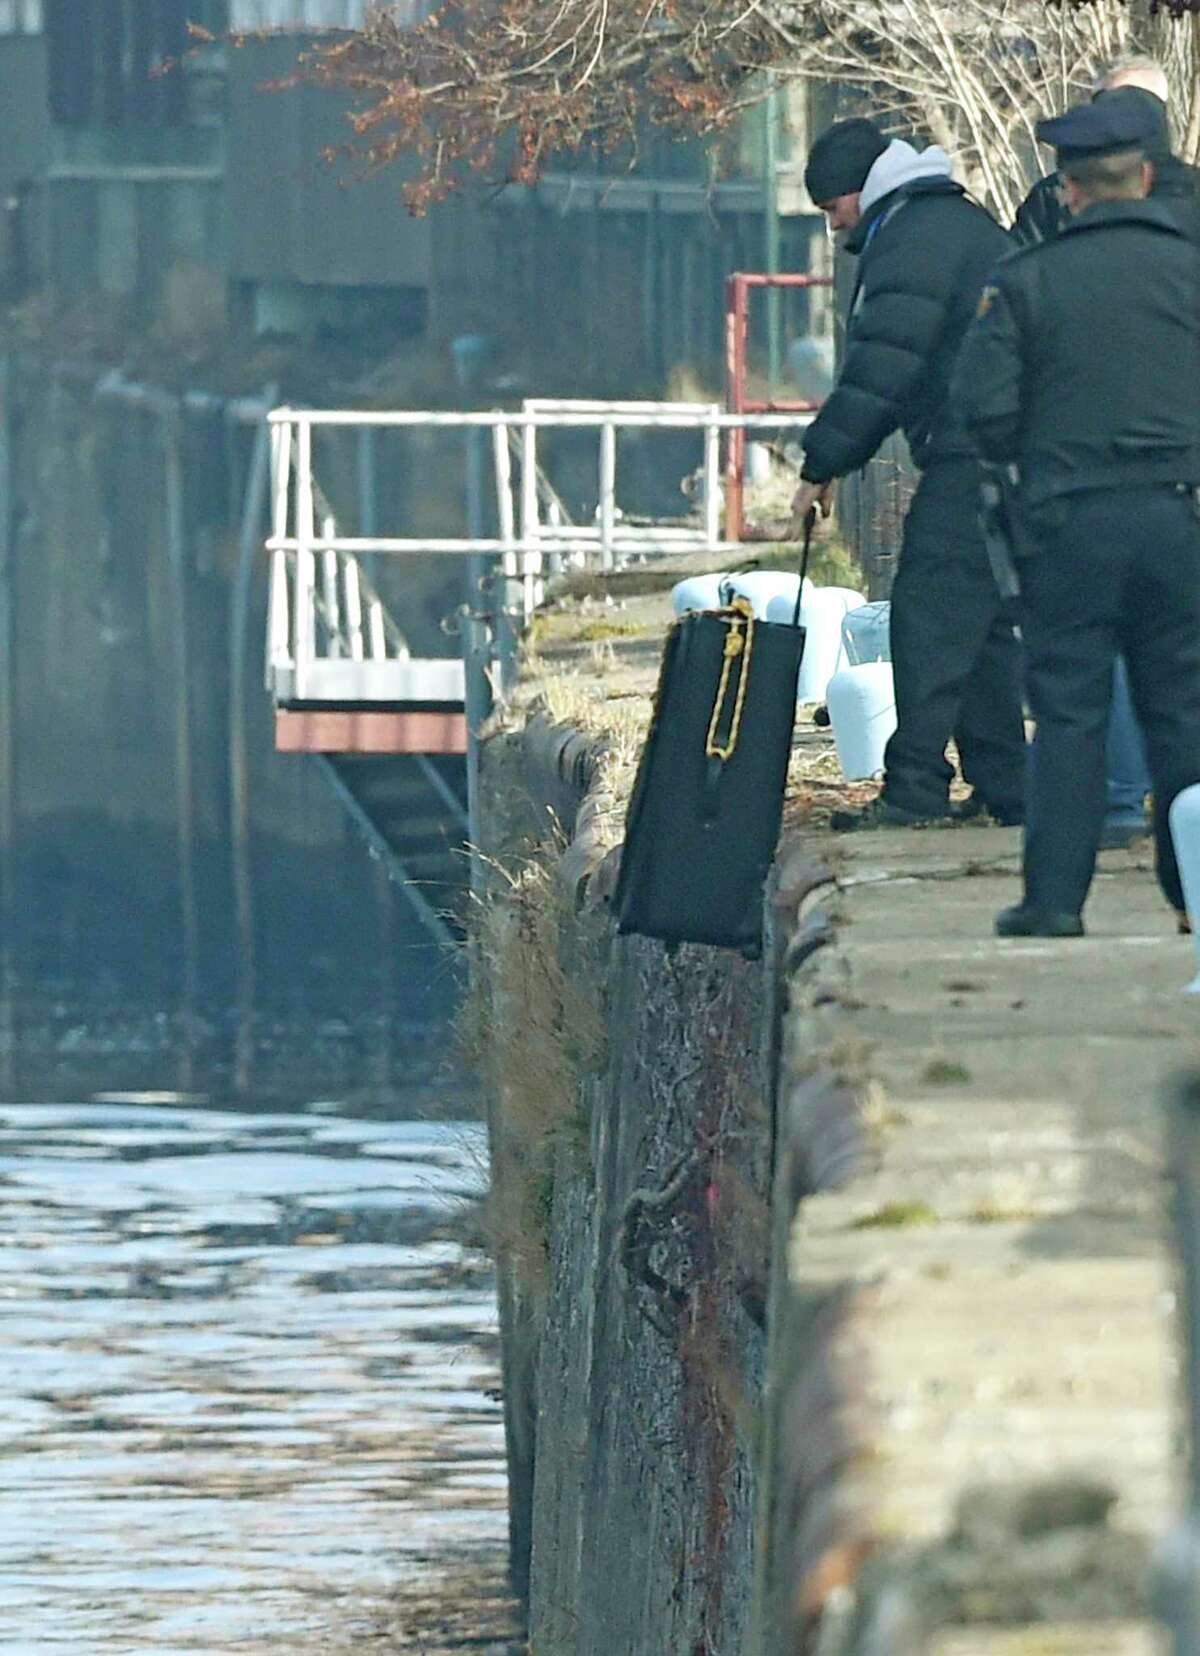 A member of the law enforcement drops a suitcase in to the water to determine what tides will do as the search of the Hudson River continues for Noel Alkaramla early Tuesday morning Dec. 8, 2015 in the area of Troy, N.Y. Alkaramla has been missing since Nov. 22nd. (Skip Dickstein/Times Union)